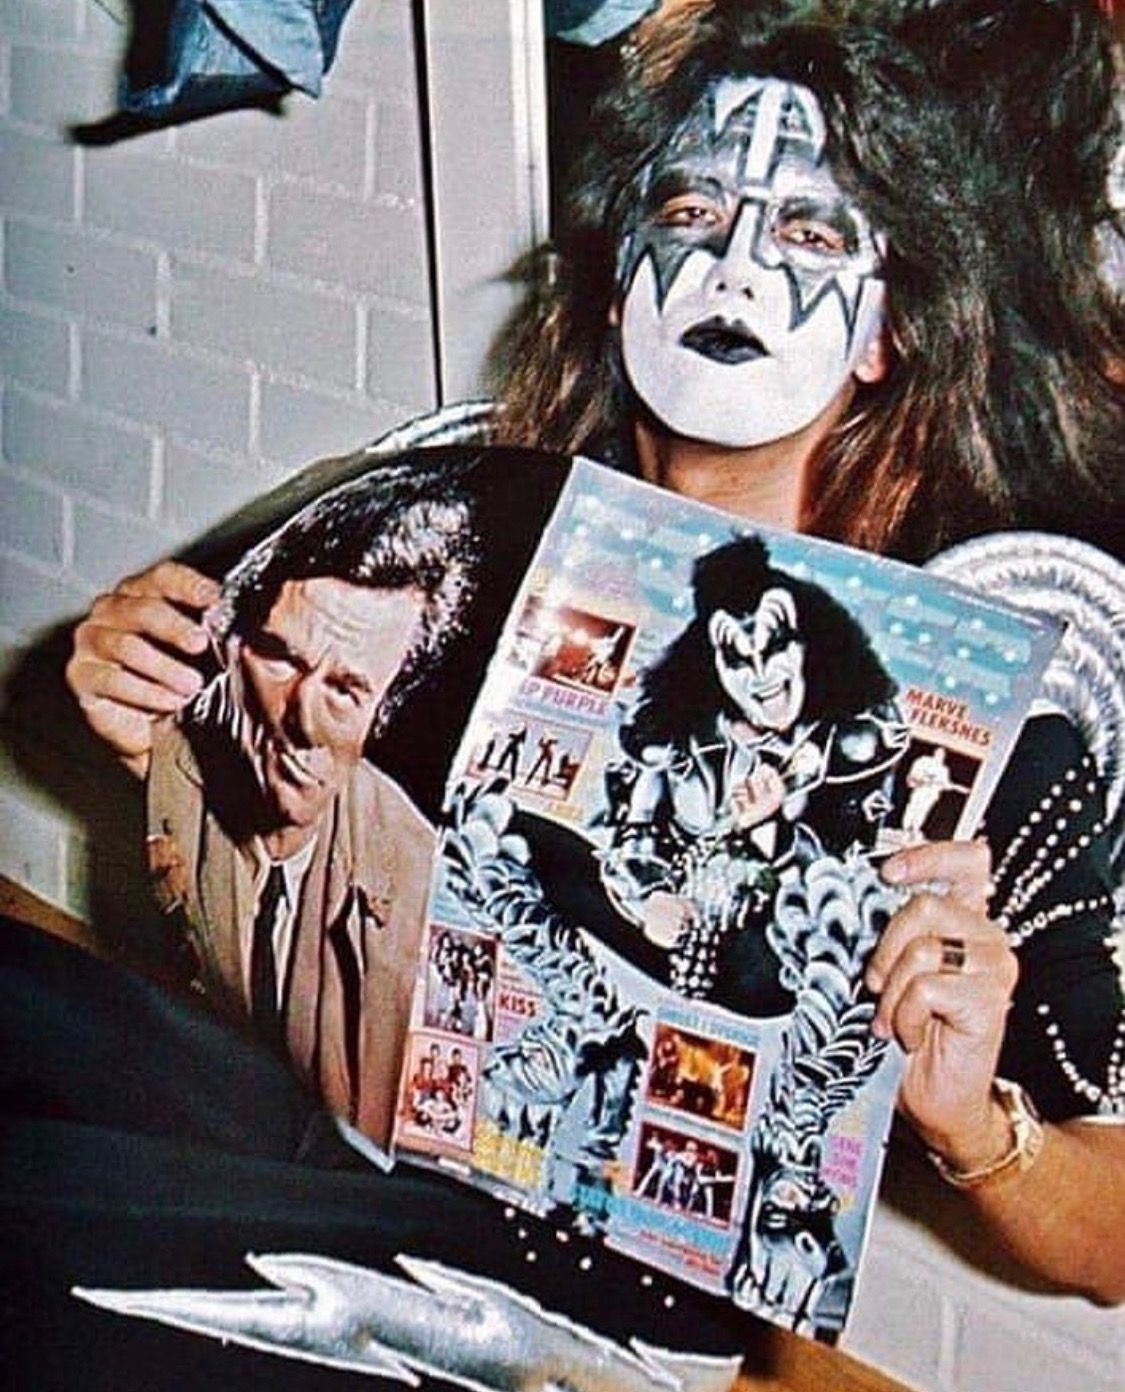 Pin By Max Bubbins On Bands Kiss Band Kiss Members Ace Frehley